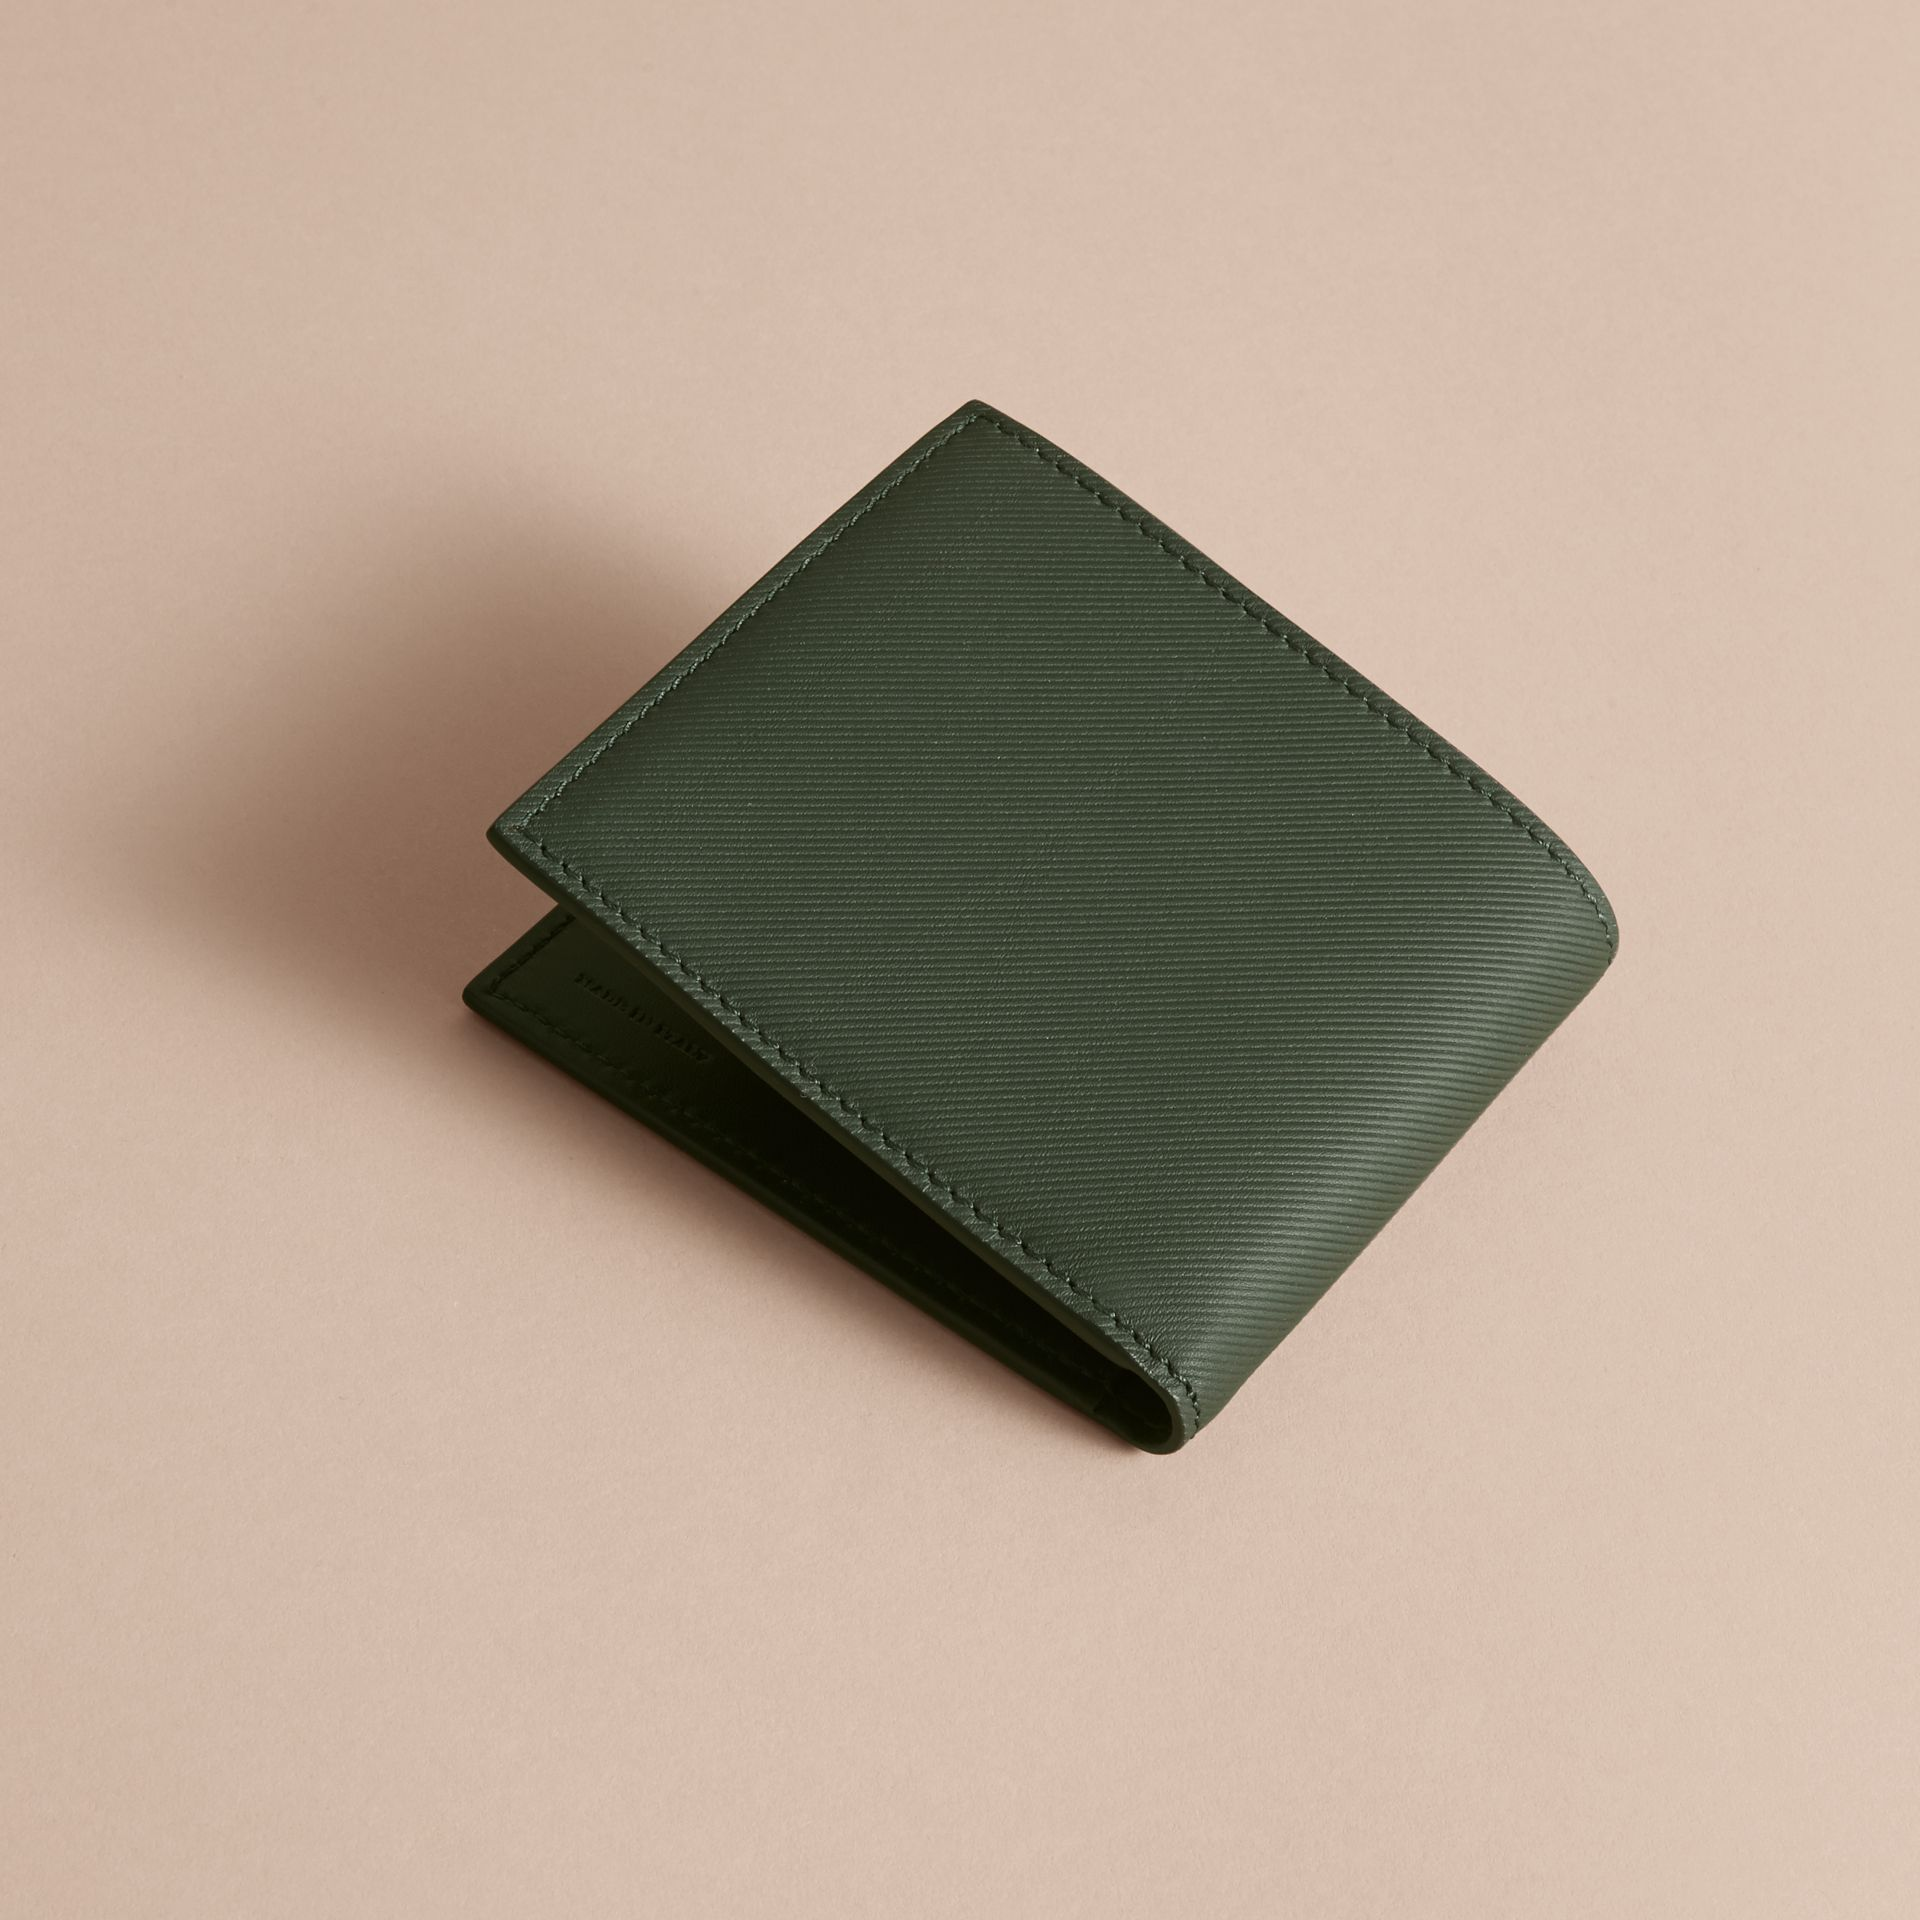 Trench Leather International Bifold Wallet in Dark Forest Green - Men | Burberry - gallery image 4